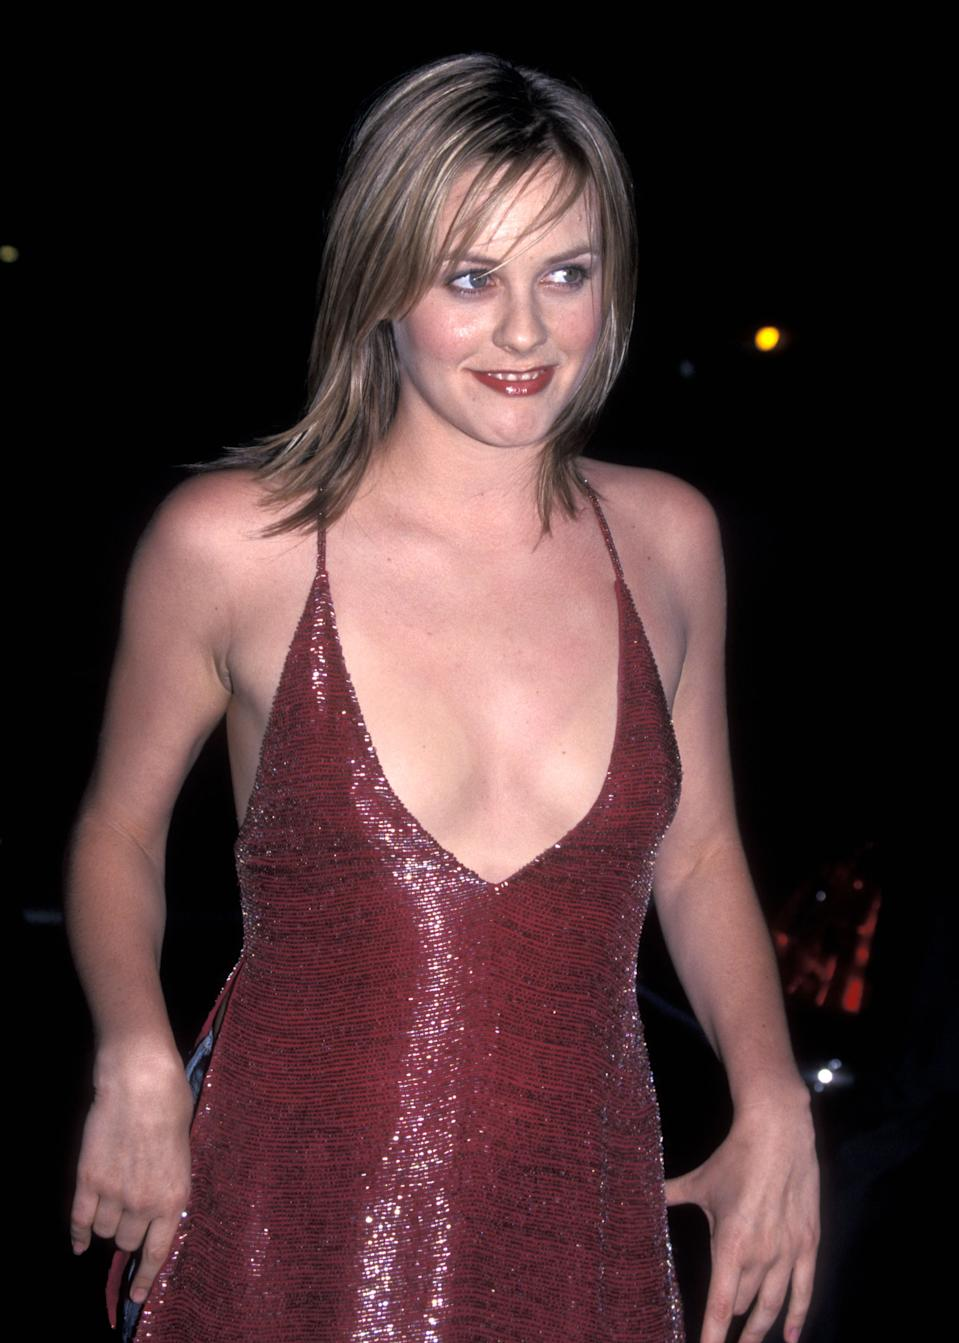 Actress Alicia Silverstone attends the Mouline Rouge Beverly Hills Premiere on May 16, 2001 at Samuel Goldwyn Theatre in Beverly Hills, California. (Photo by Ron Galella, Ltd./Ron Galella Collection via Getty Images)